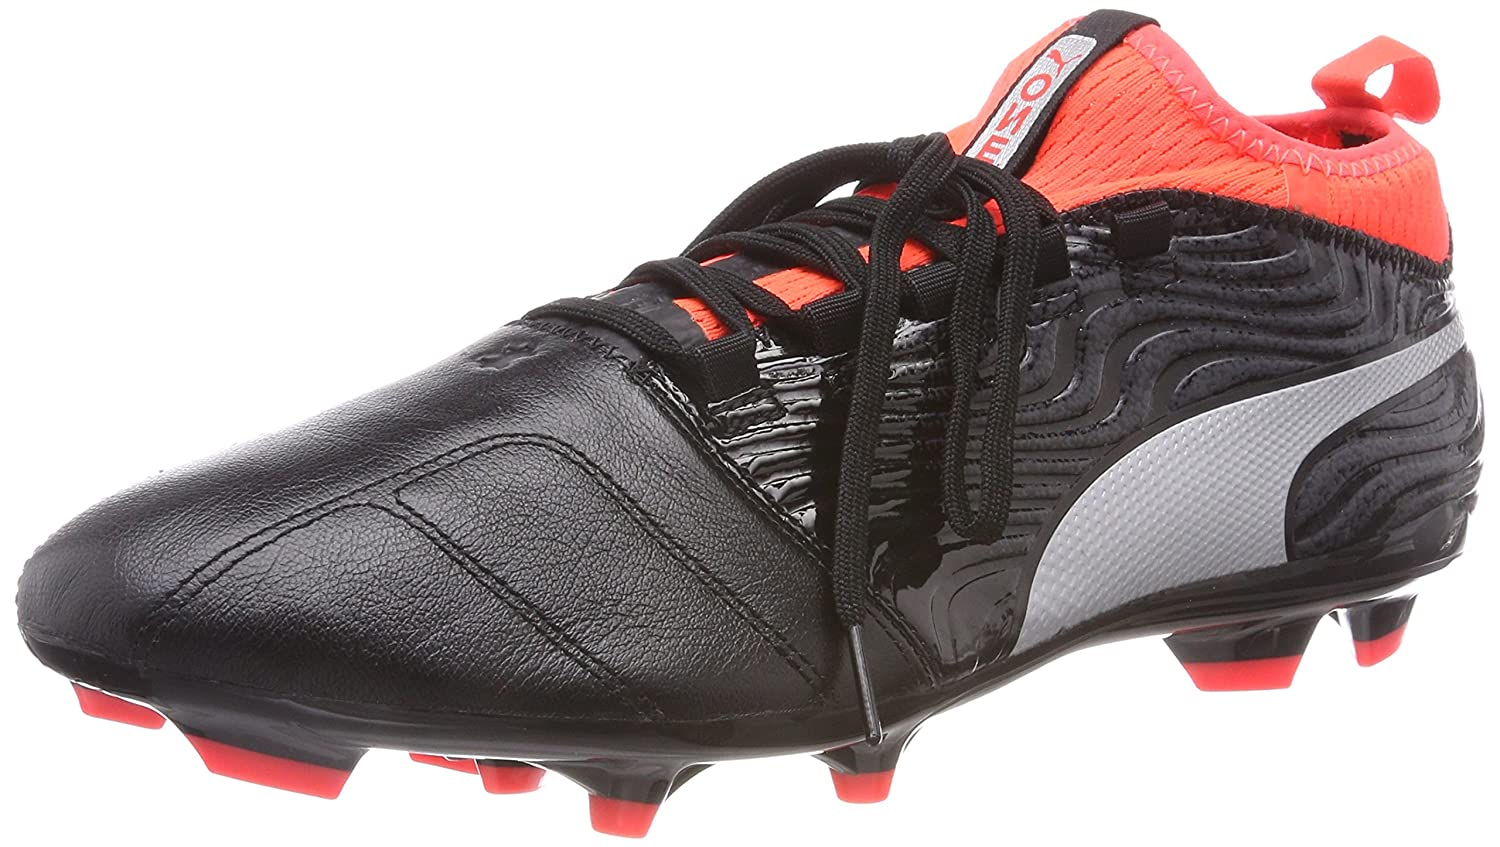 e5c9d247 Puma Men's One 18.3 Fg Football Boots